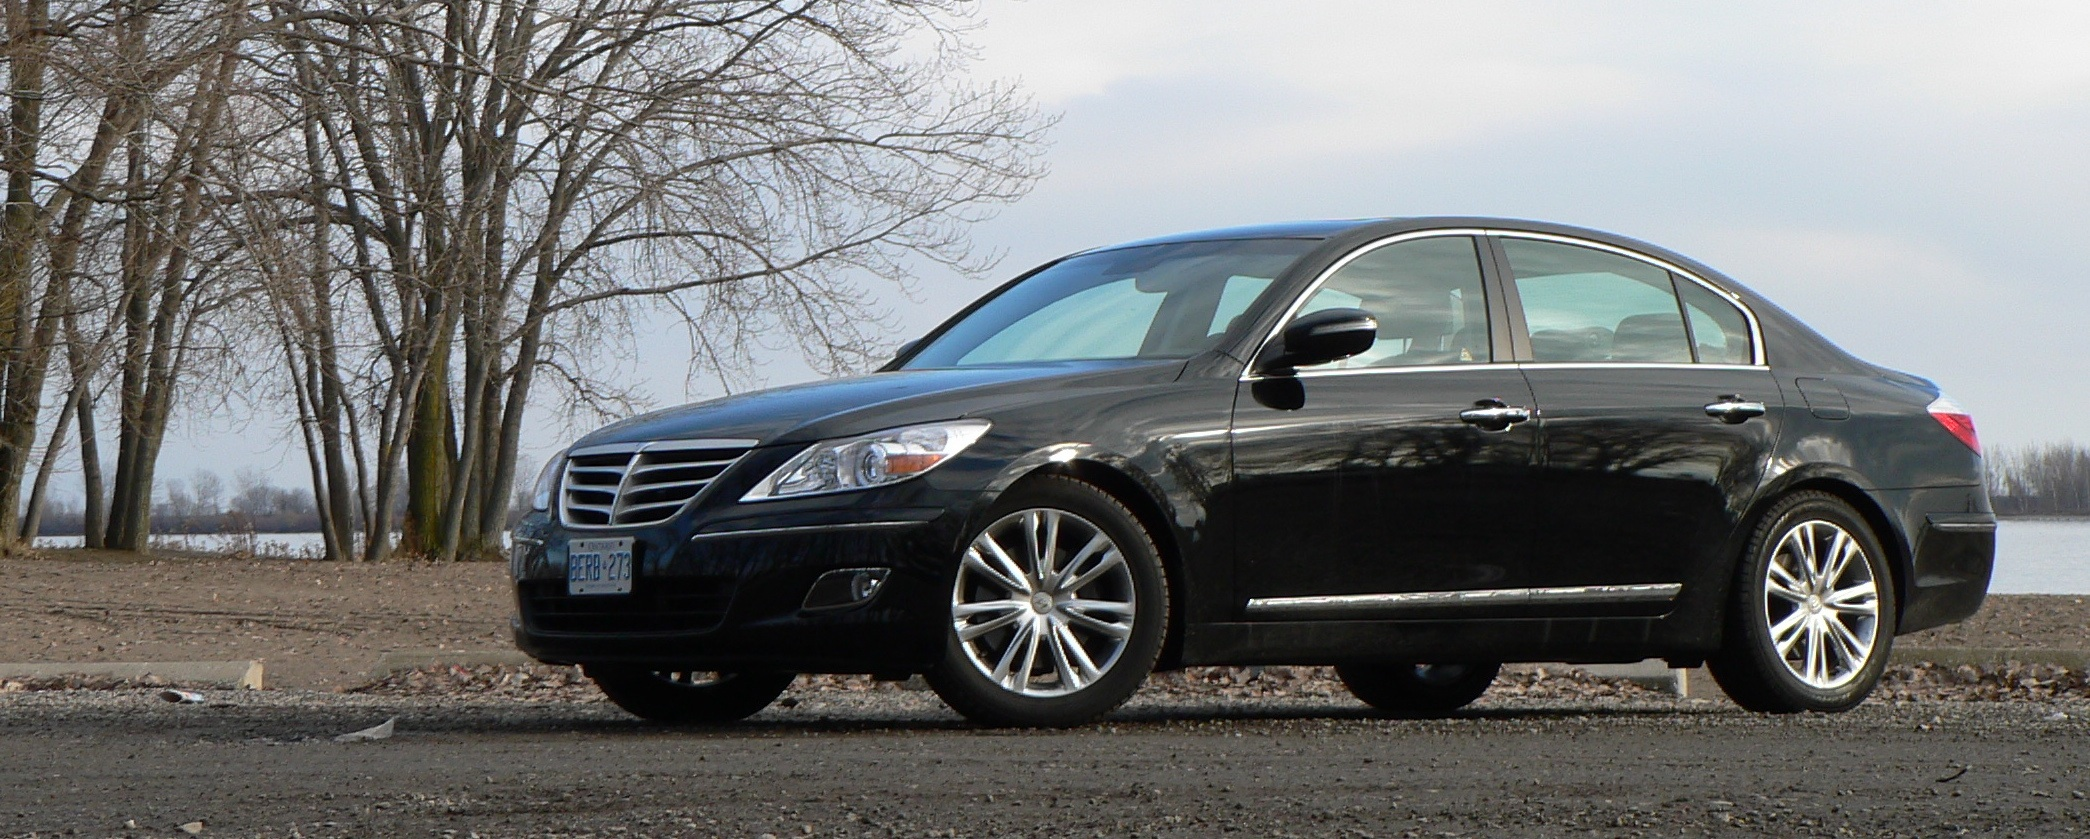 2009  Hyundai Genesis 4.6 picture, mods, upgrades